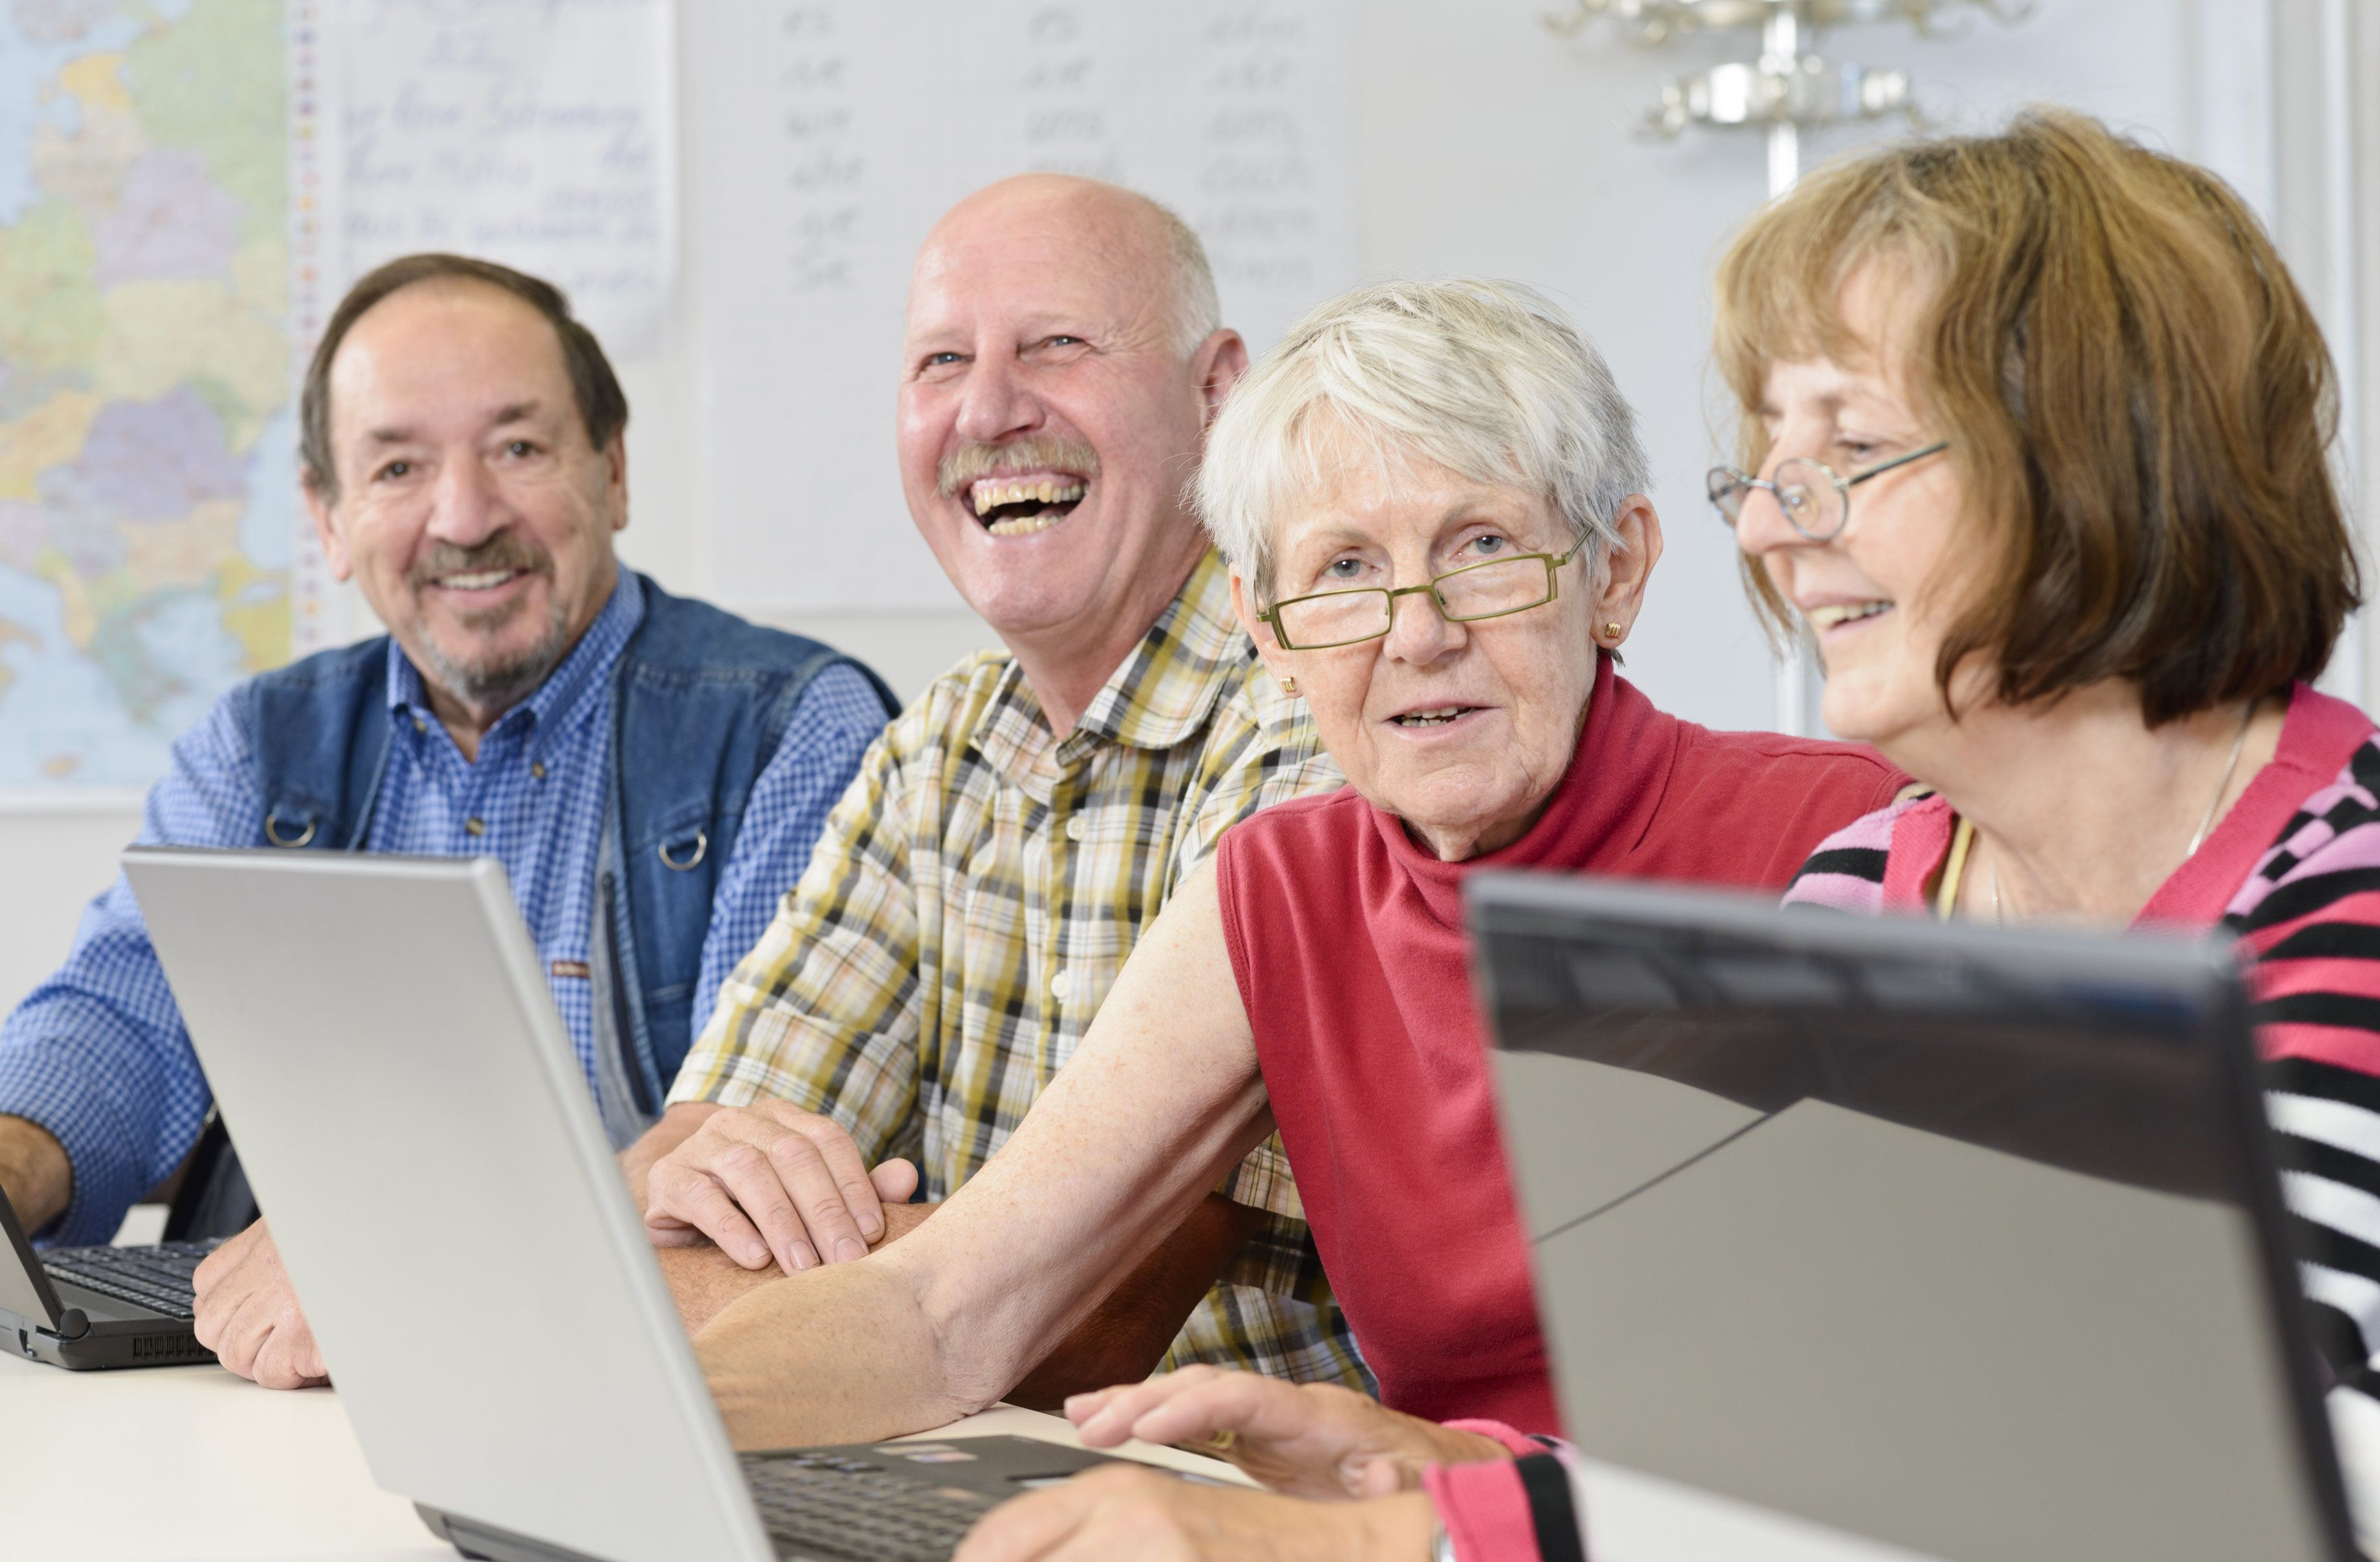 Helping Seniors Learn New Technology How To Start Conversations Computer Lessons Older Adults